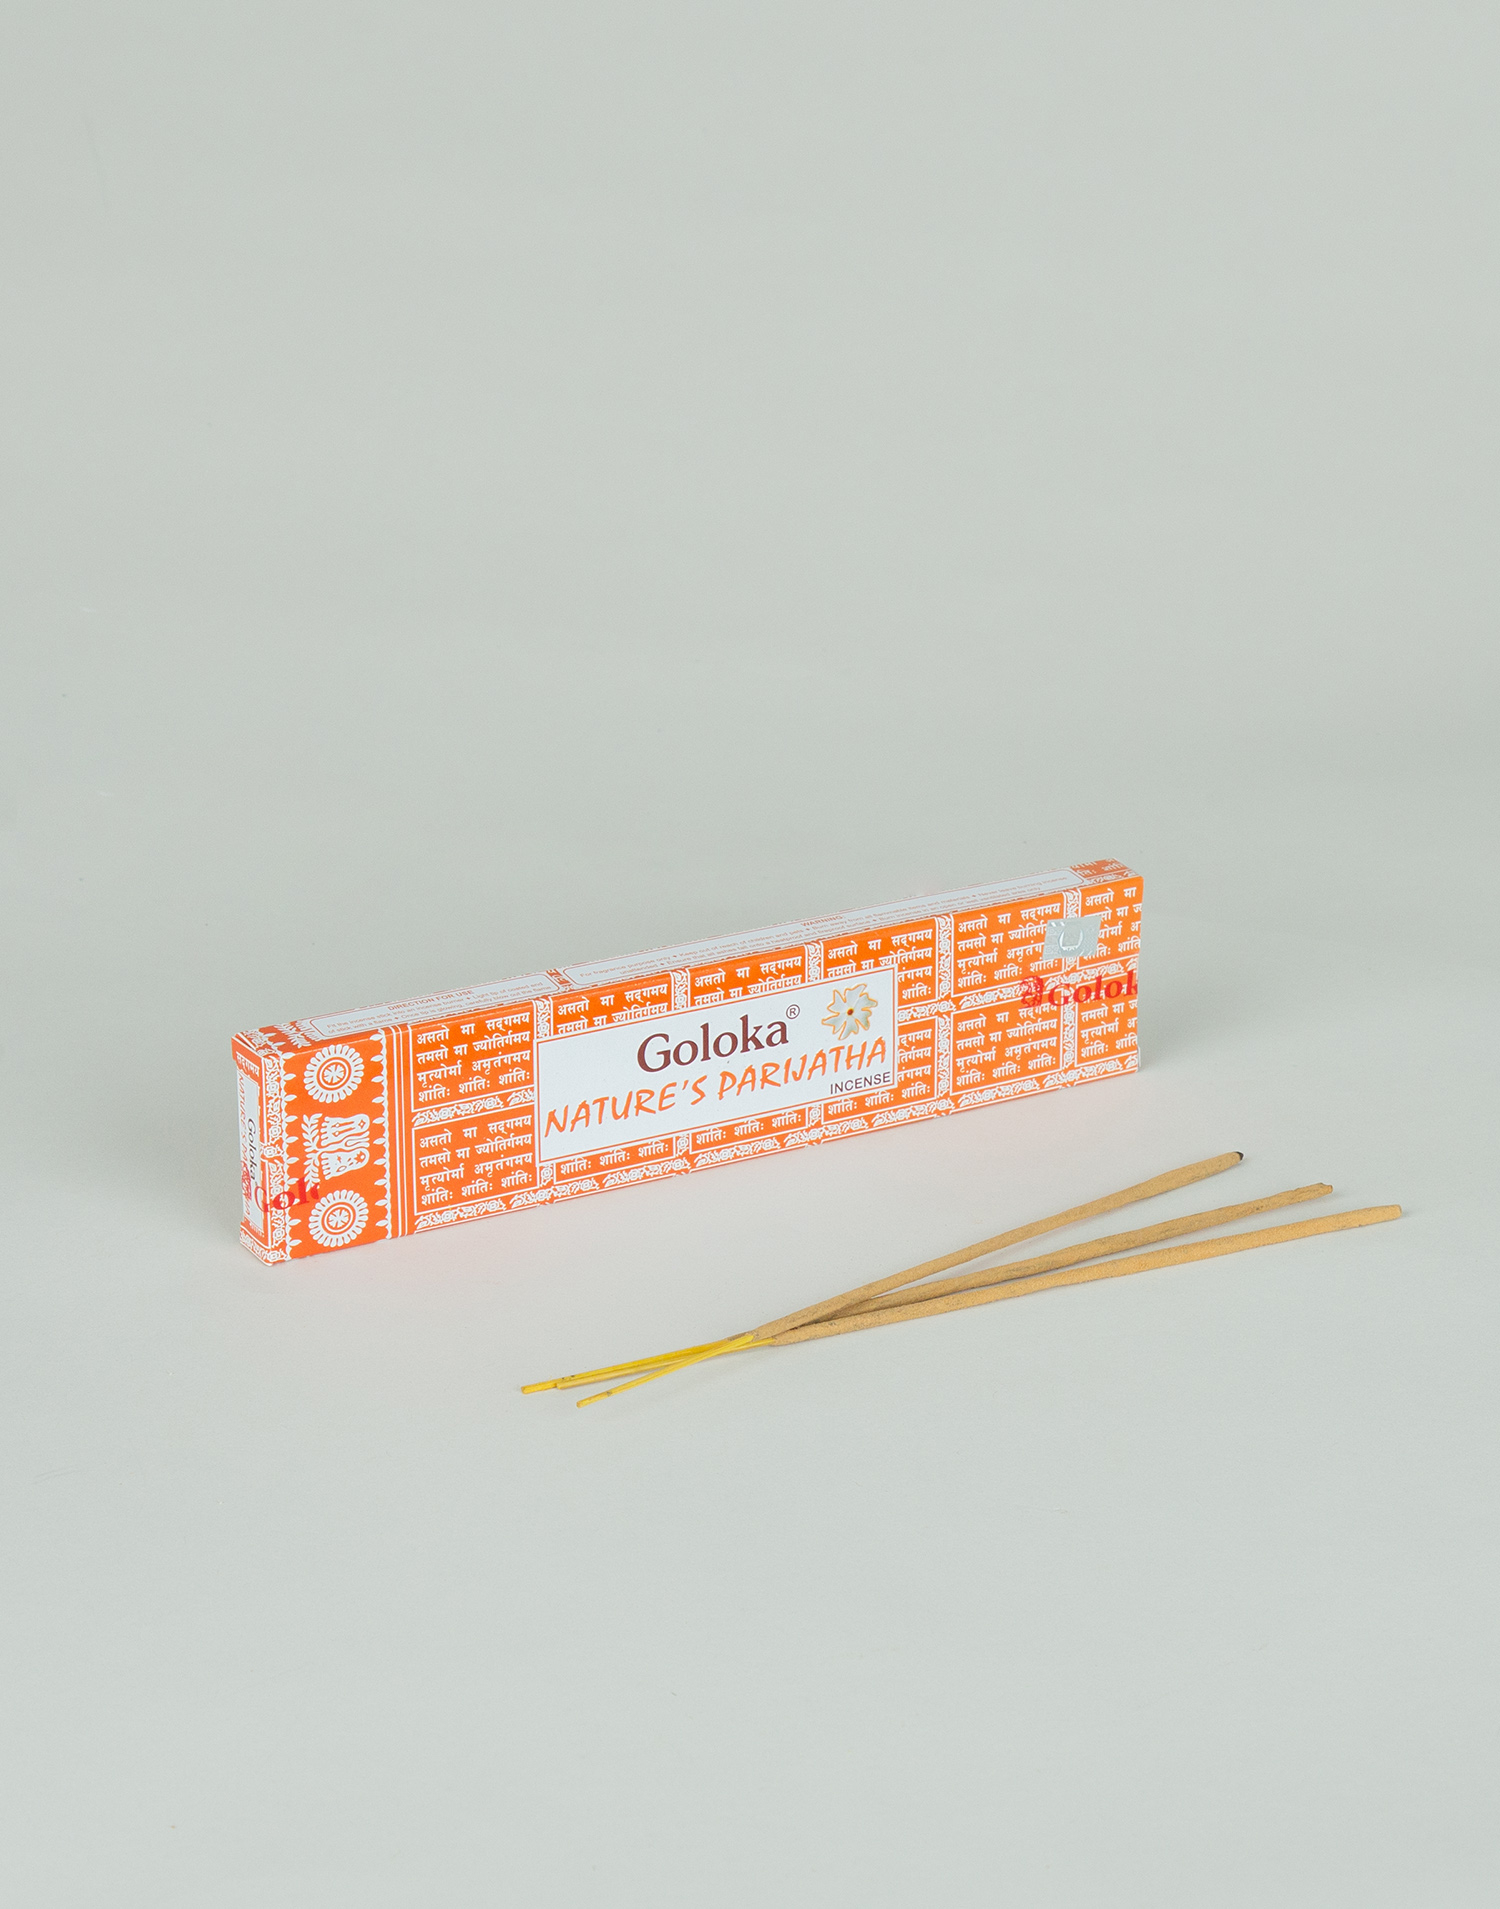 Goloka nature incense